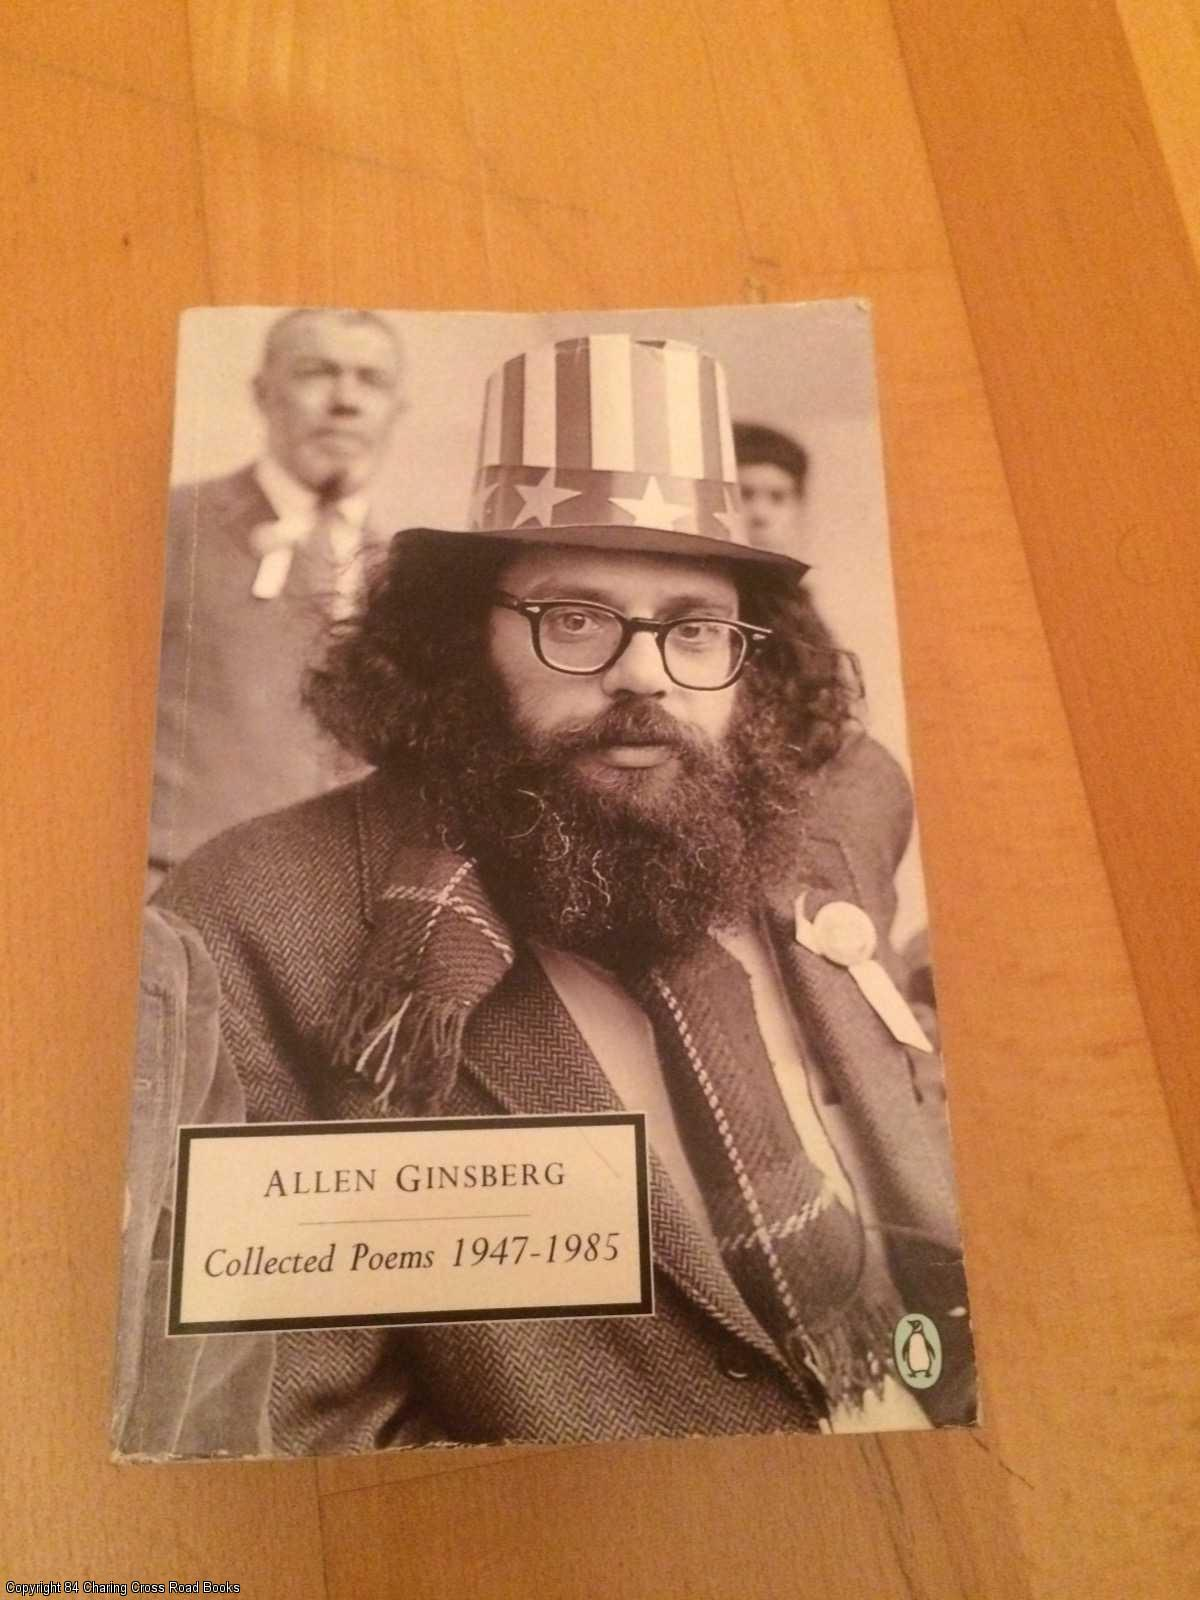 GINSBERG, ALLEN - Collected Poems, 1947 - 1985